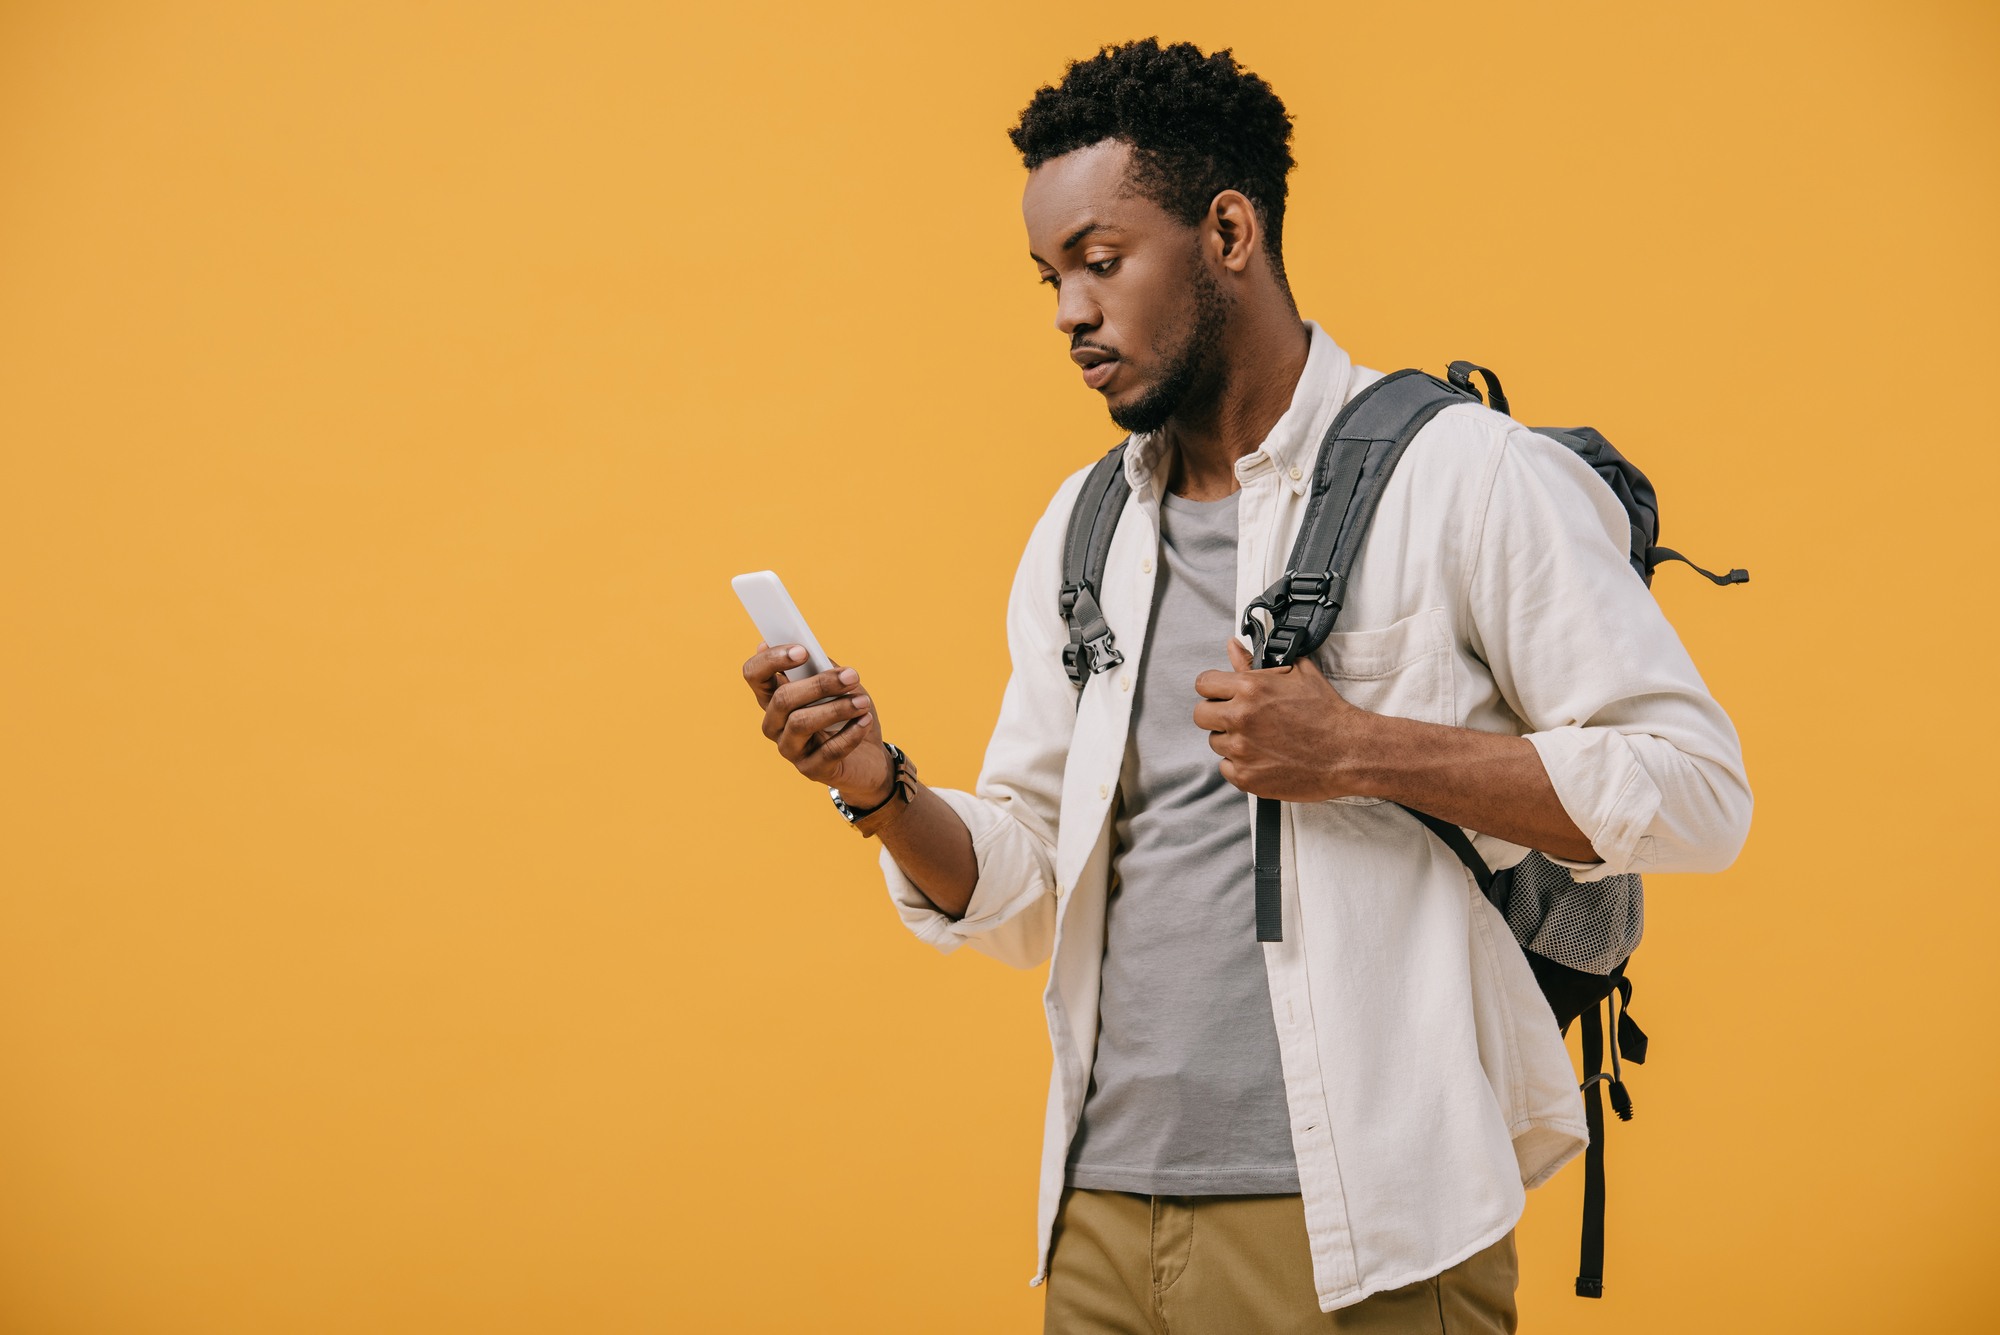 African american man with backpack looking at smartphone isolated on orange